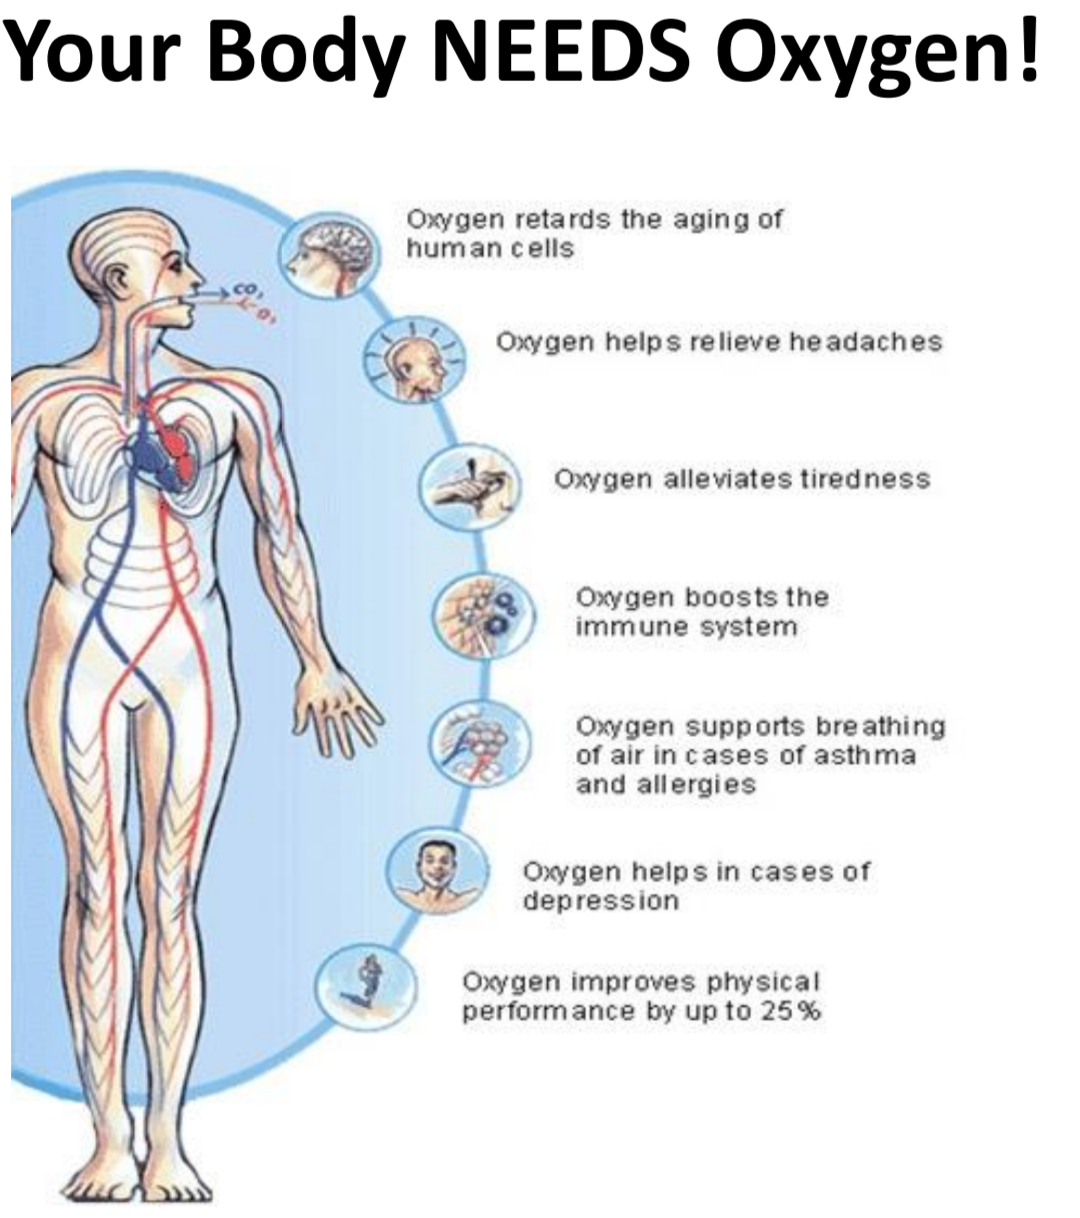 Benefits of Oxygen Therapy